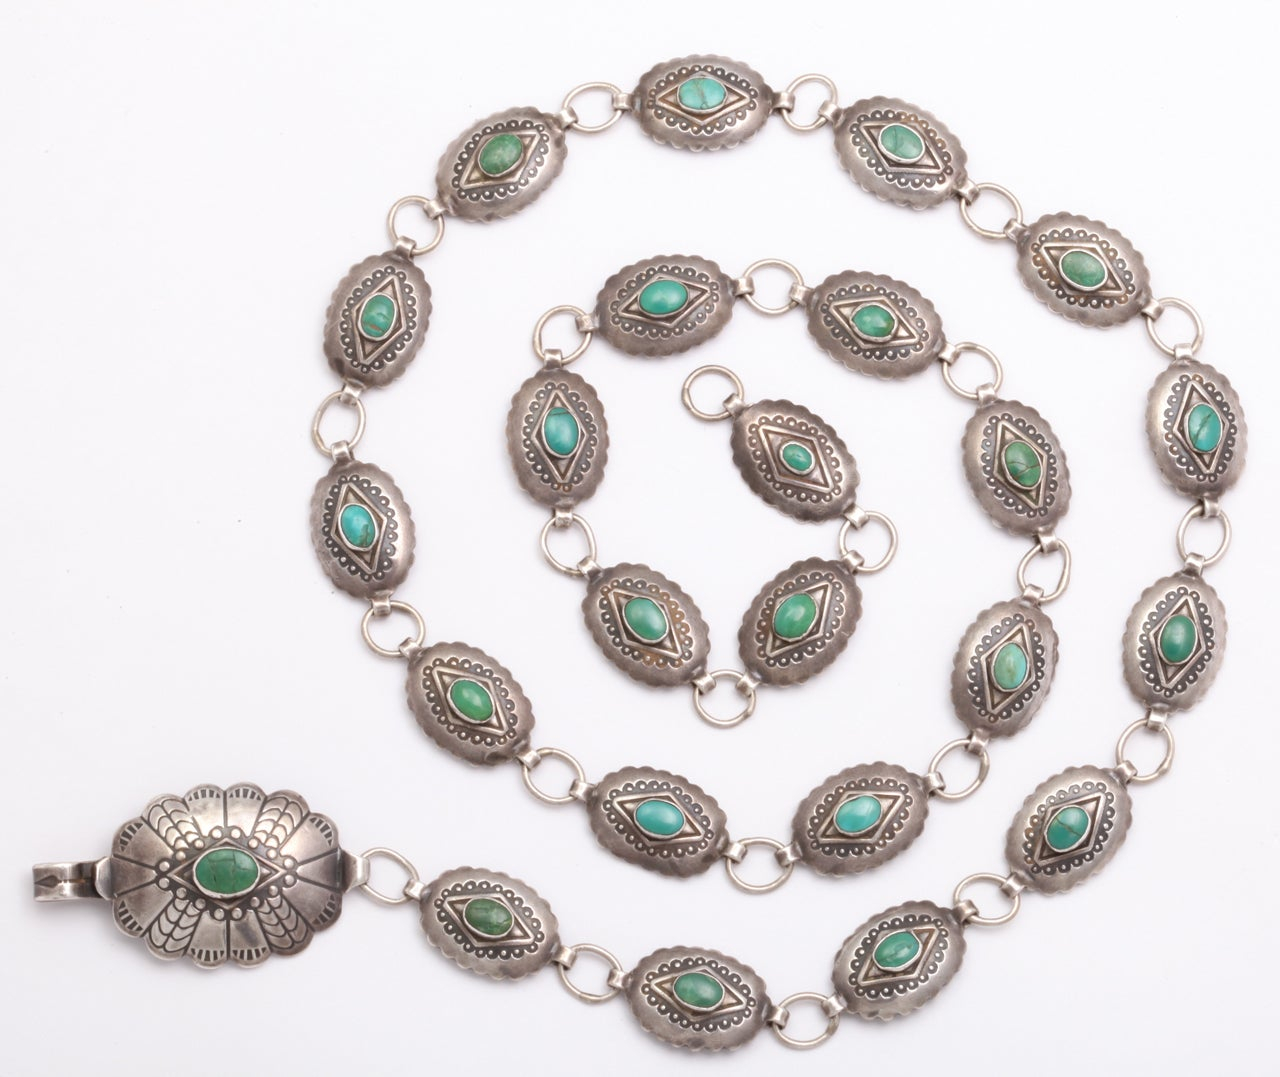 A Patterned Navajo Belt of Silver and Turquoise 2